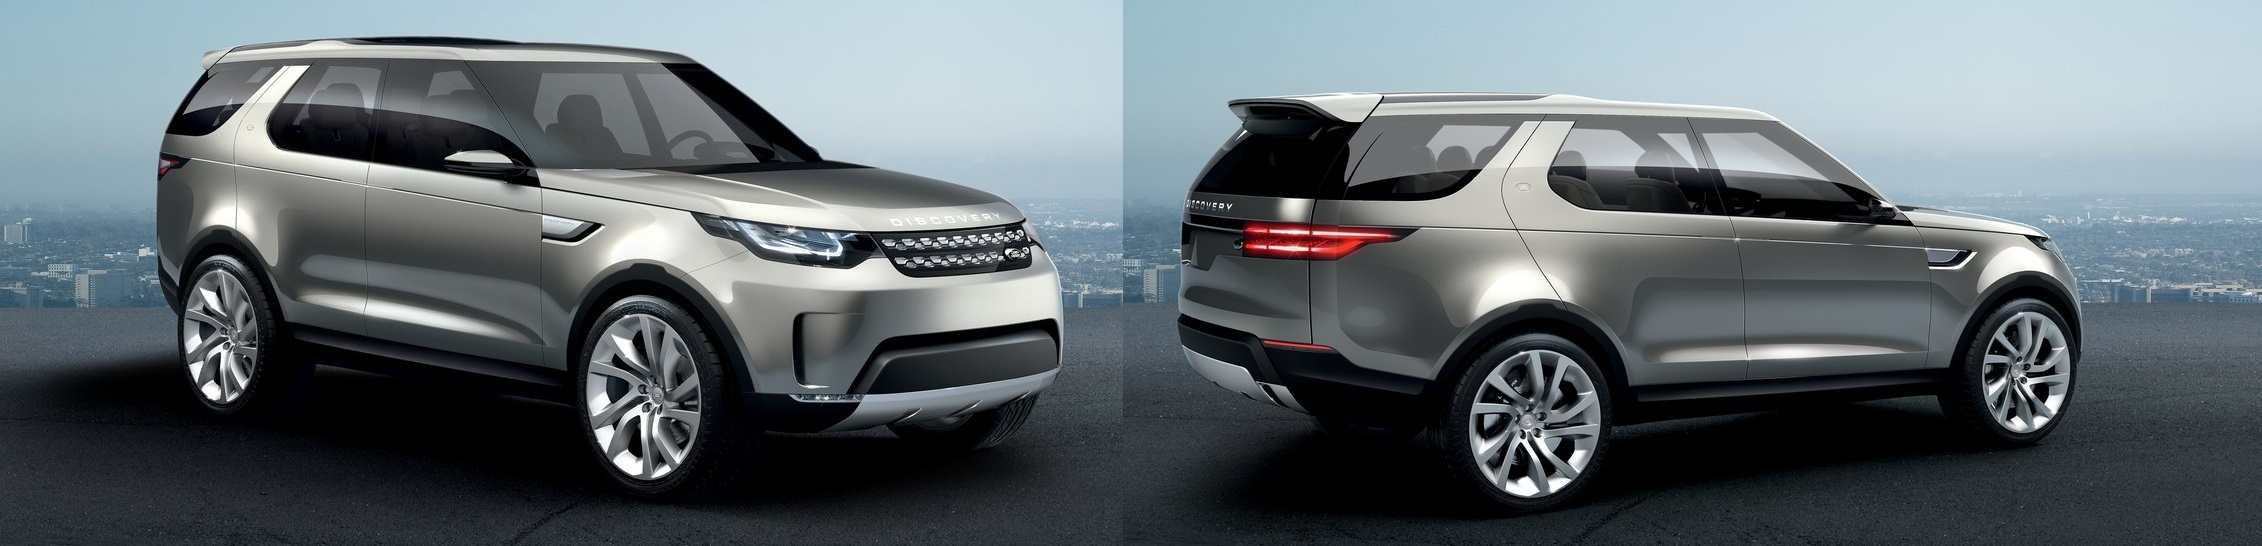 land_rover-discovery_vision_concept-2014